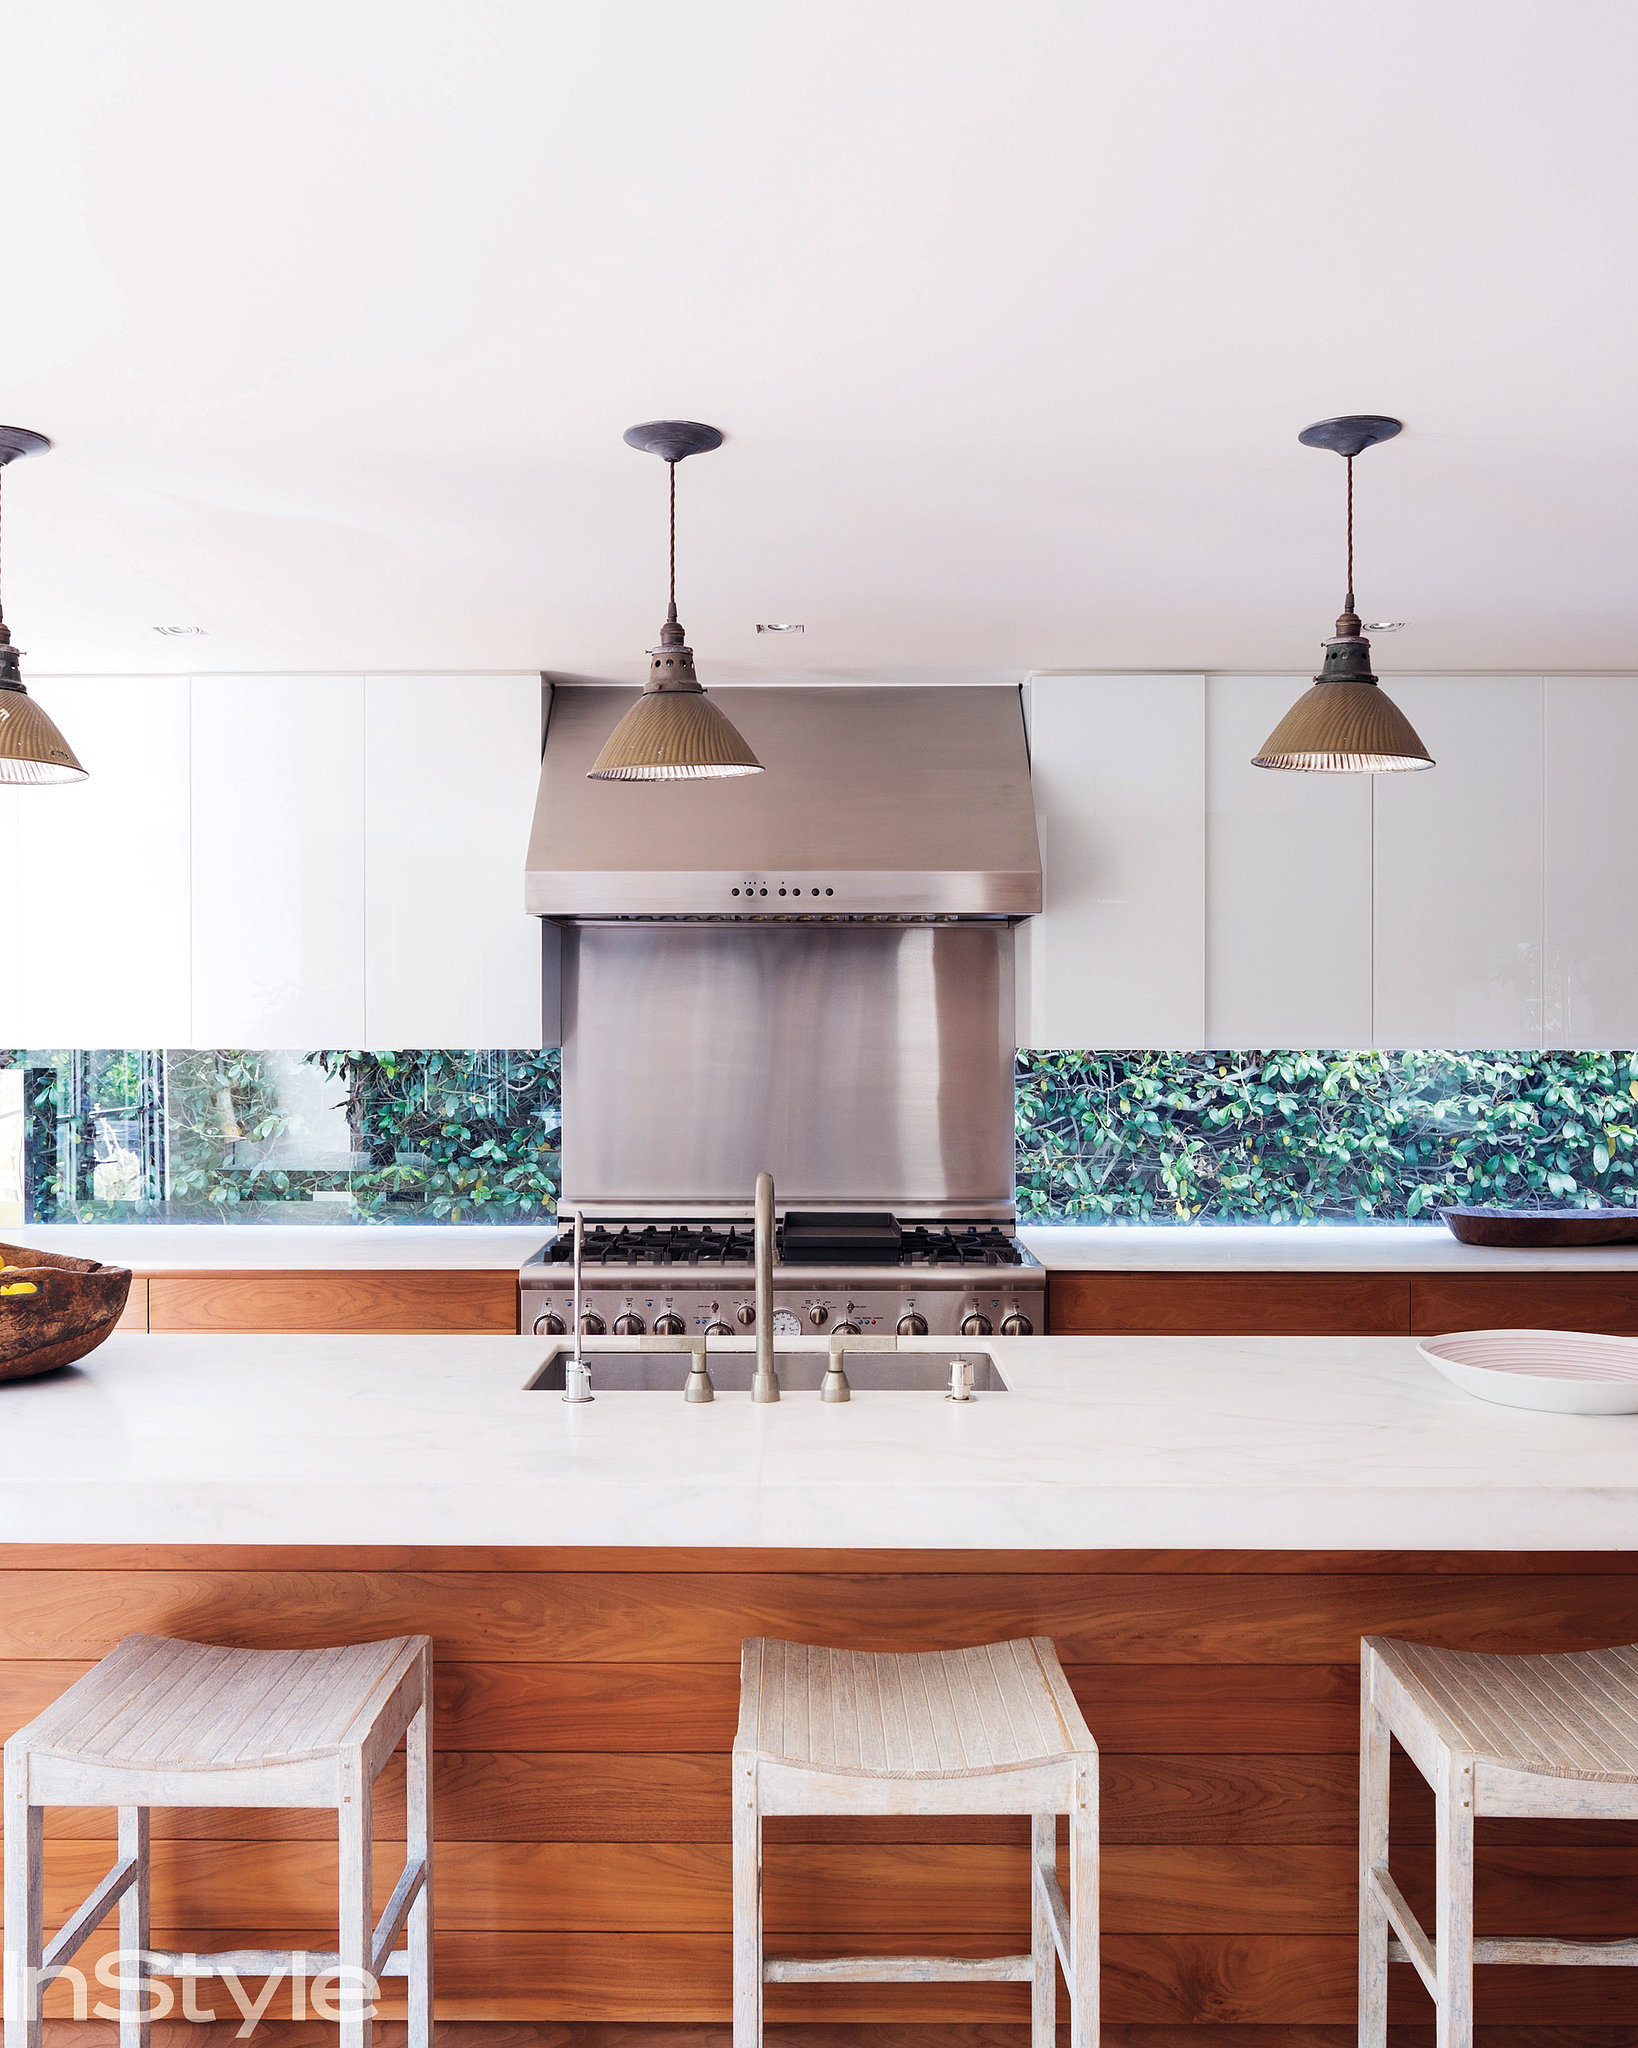 A peekaboo backsplash made from glass brings the outdoors into the kitchen.   Source: Dean Kaufman for InStyle